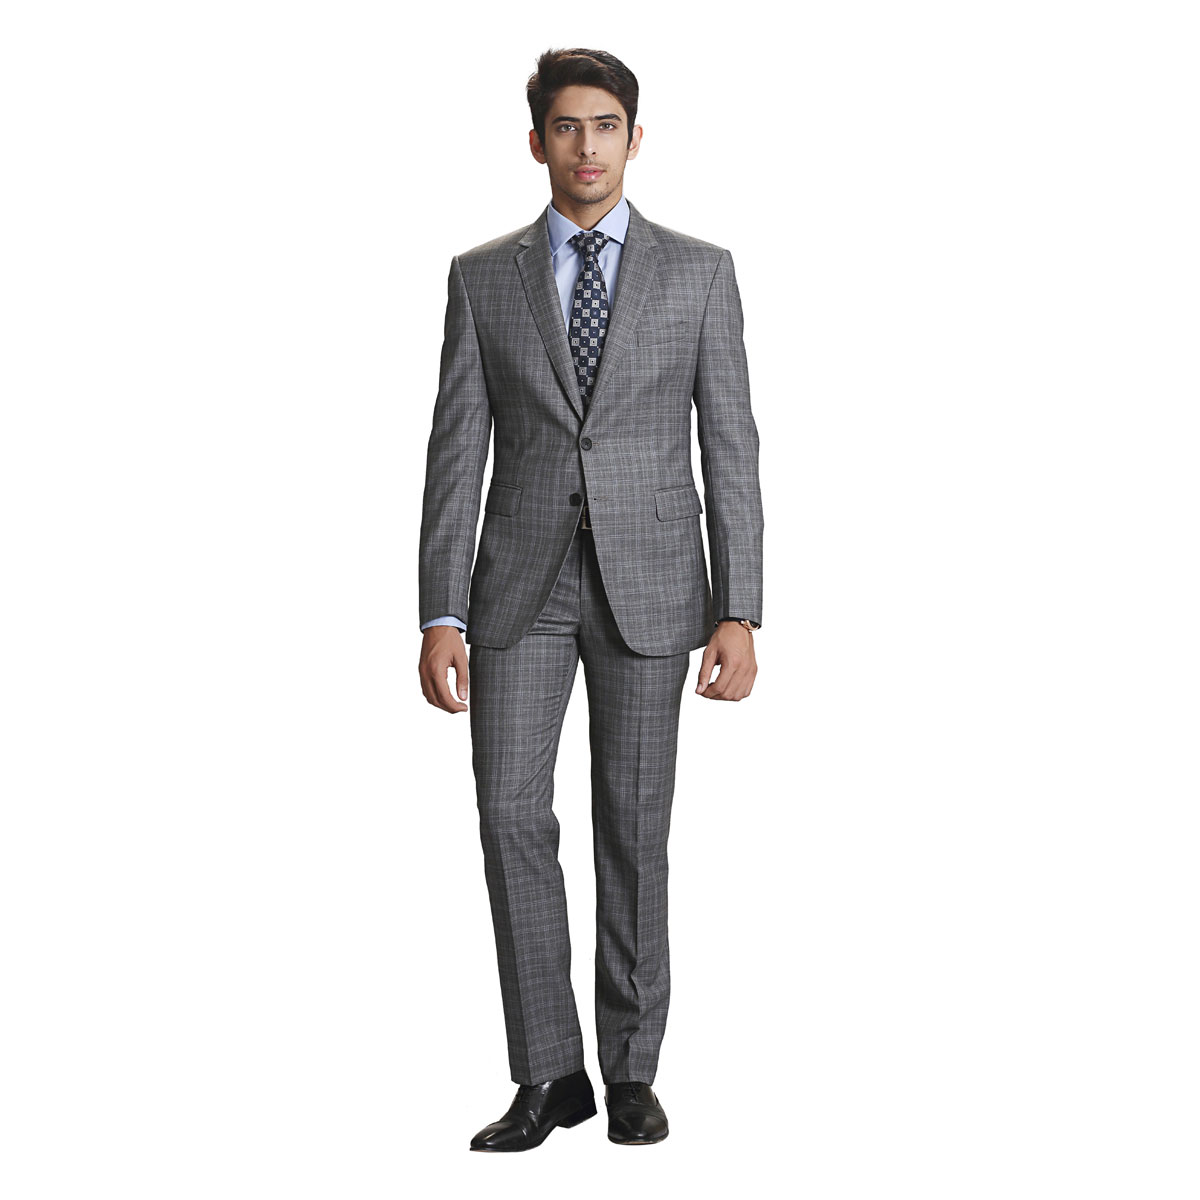 Smiling Dreams Grey Suit - Best Bespoke Suits. Premium Custom ...